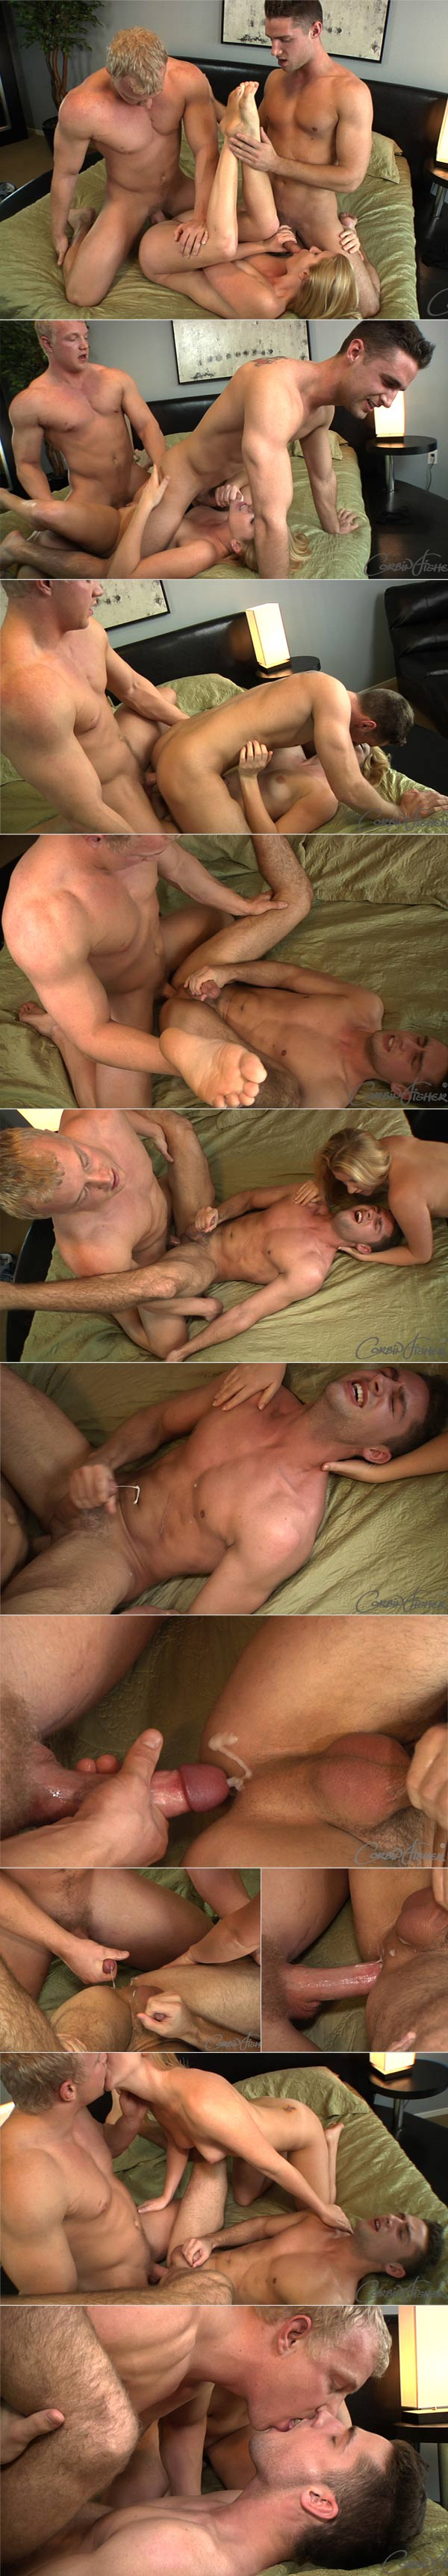 Steve Fucks Harper & Ashley at AmateurCollegeSex